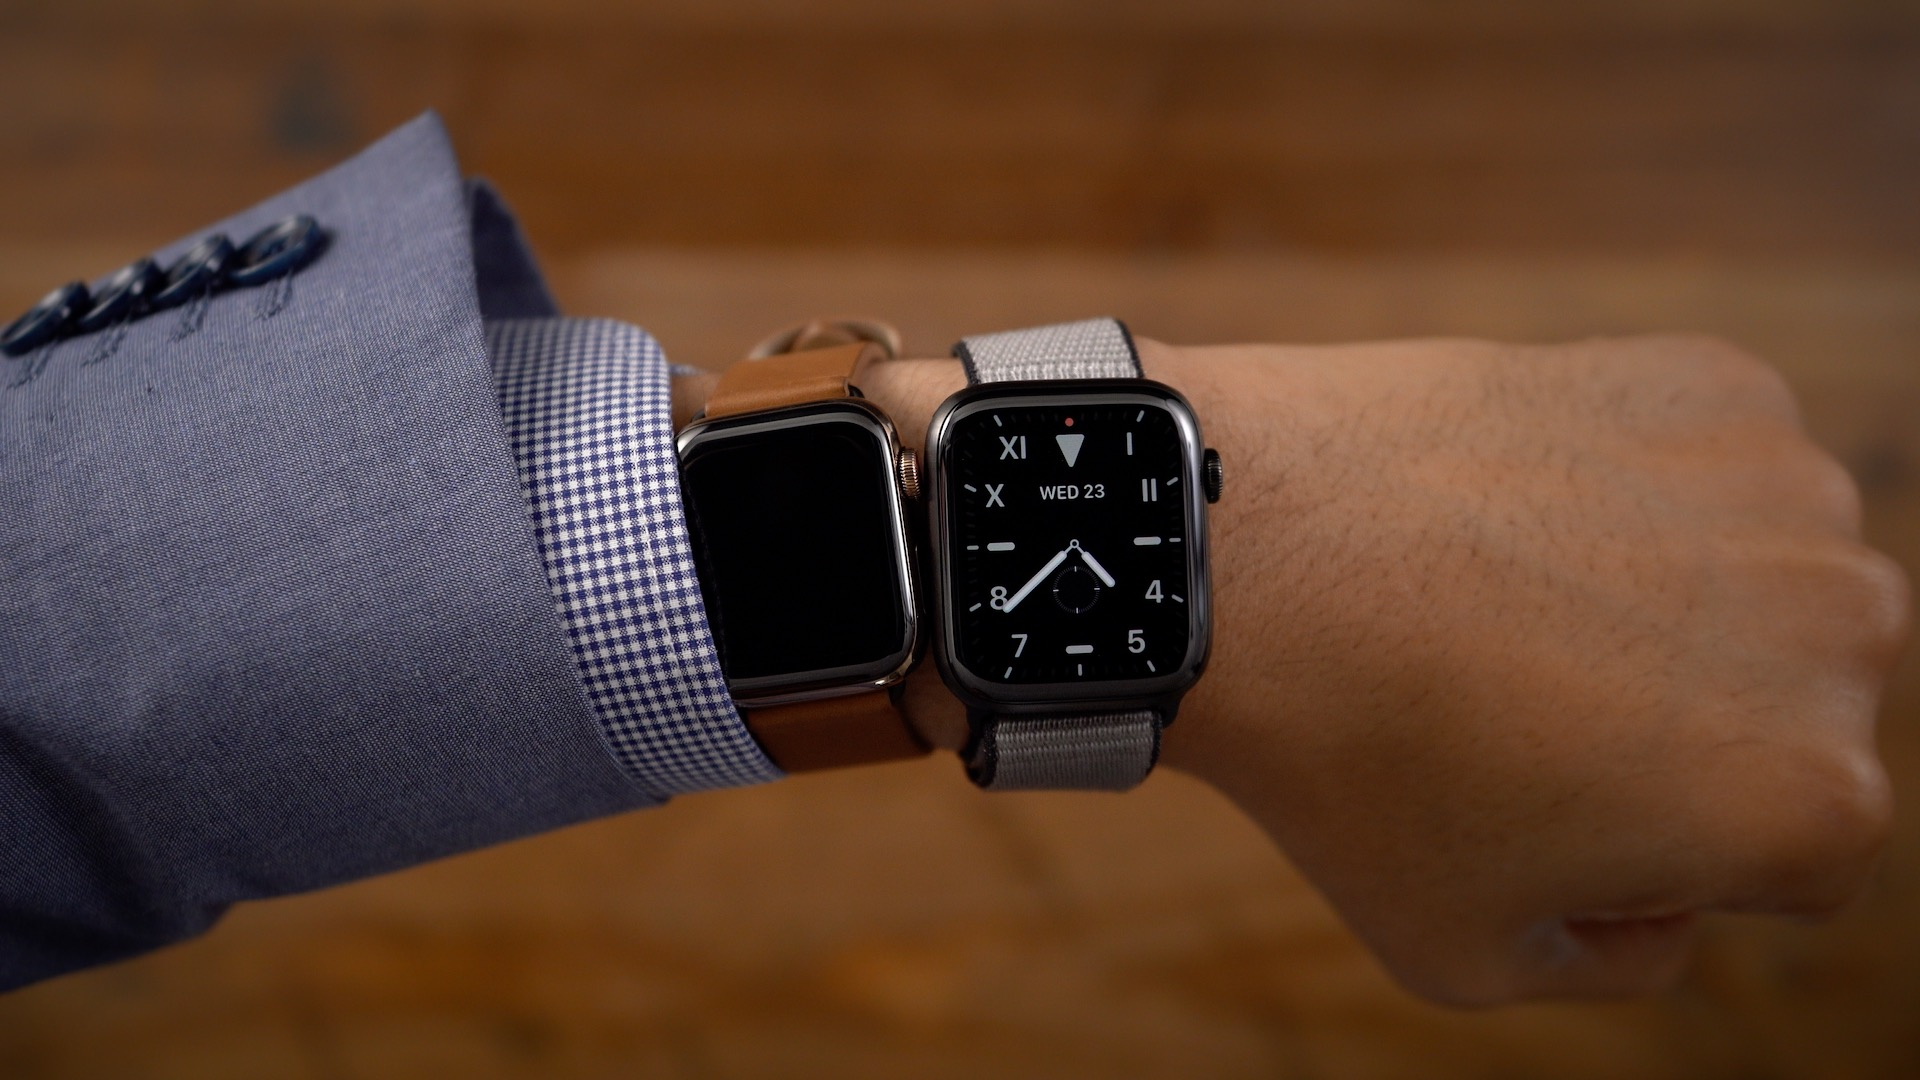 Apple Watch Series 4 inactive state vs Series 5 inactive state